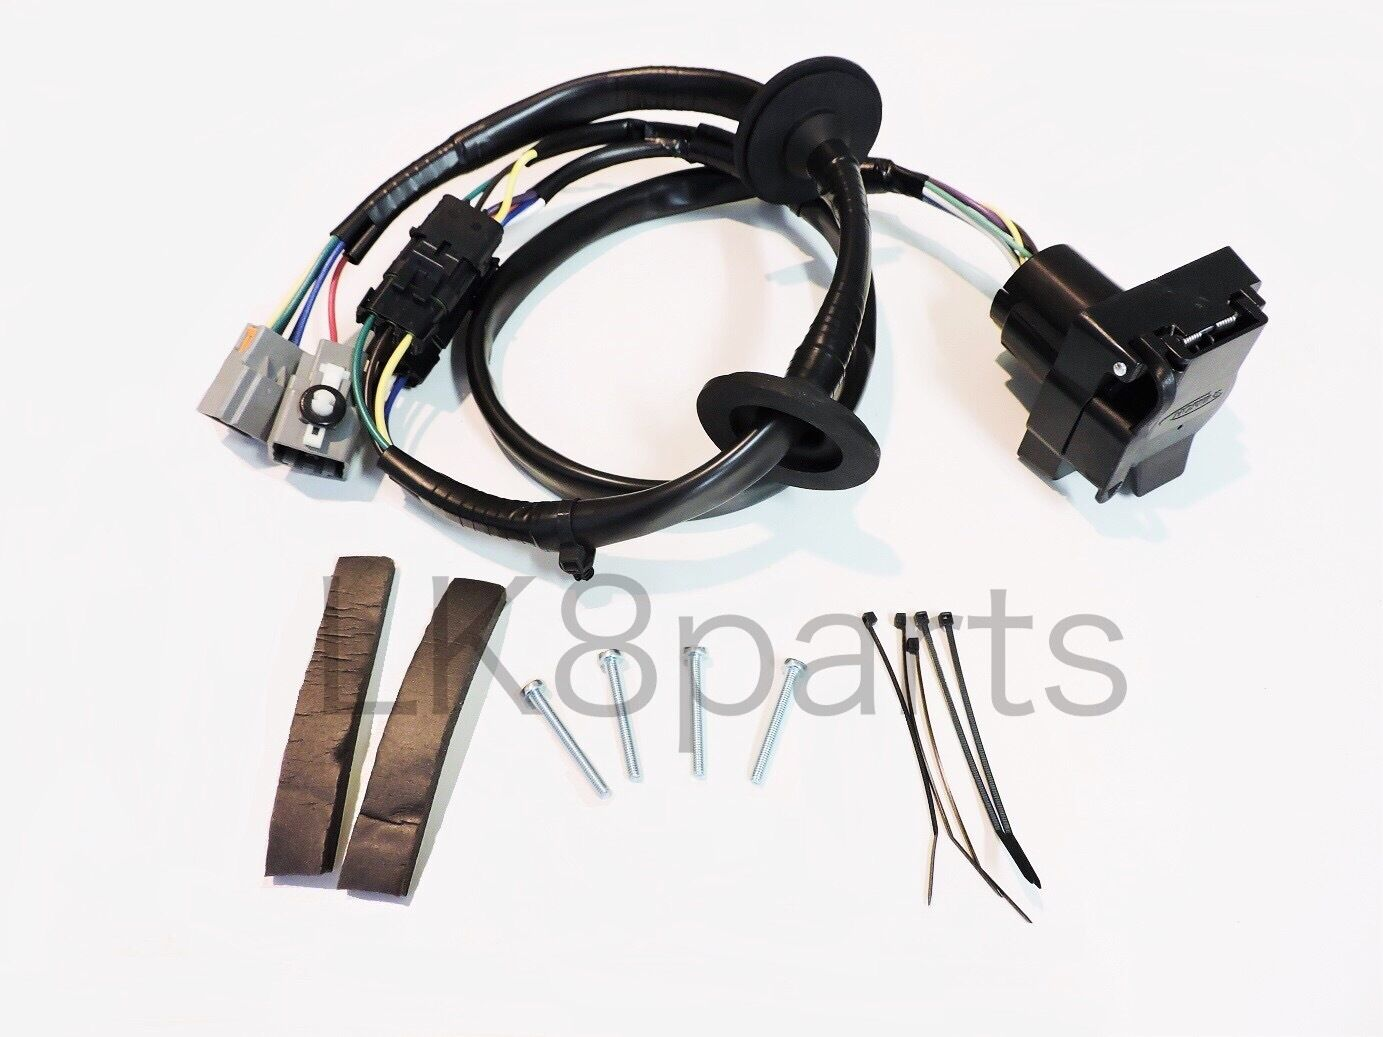 land rover lr4 tow hitch trailer wiring wire harness kit lr4 10 12 land rover lr4 tow hitch trailer wiring wire harness kit lr4 10 12 vplat0013 new